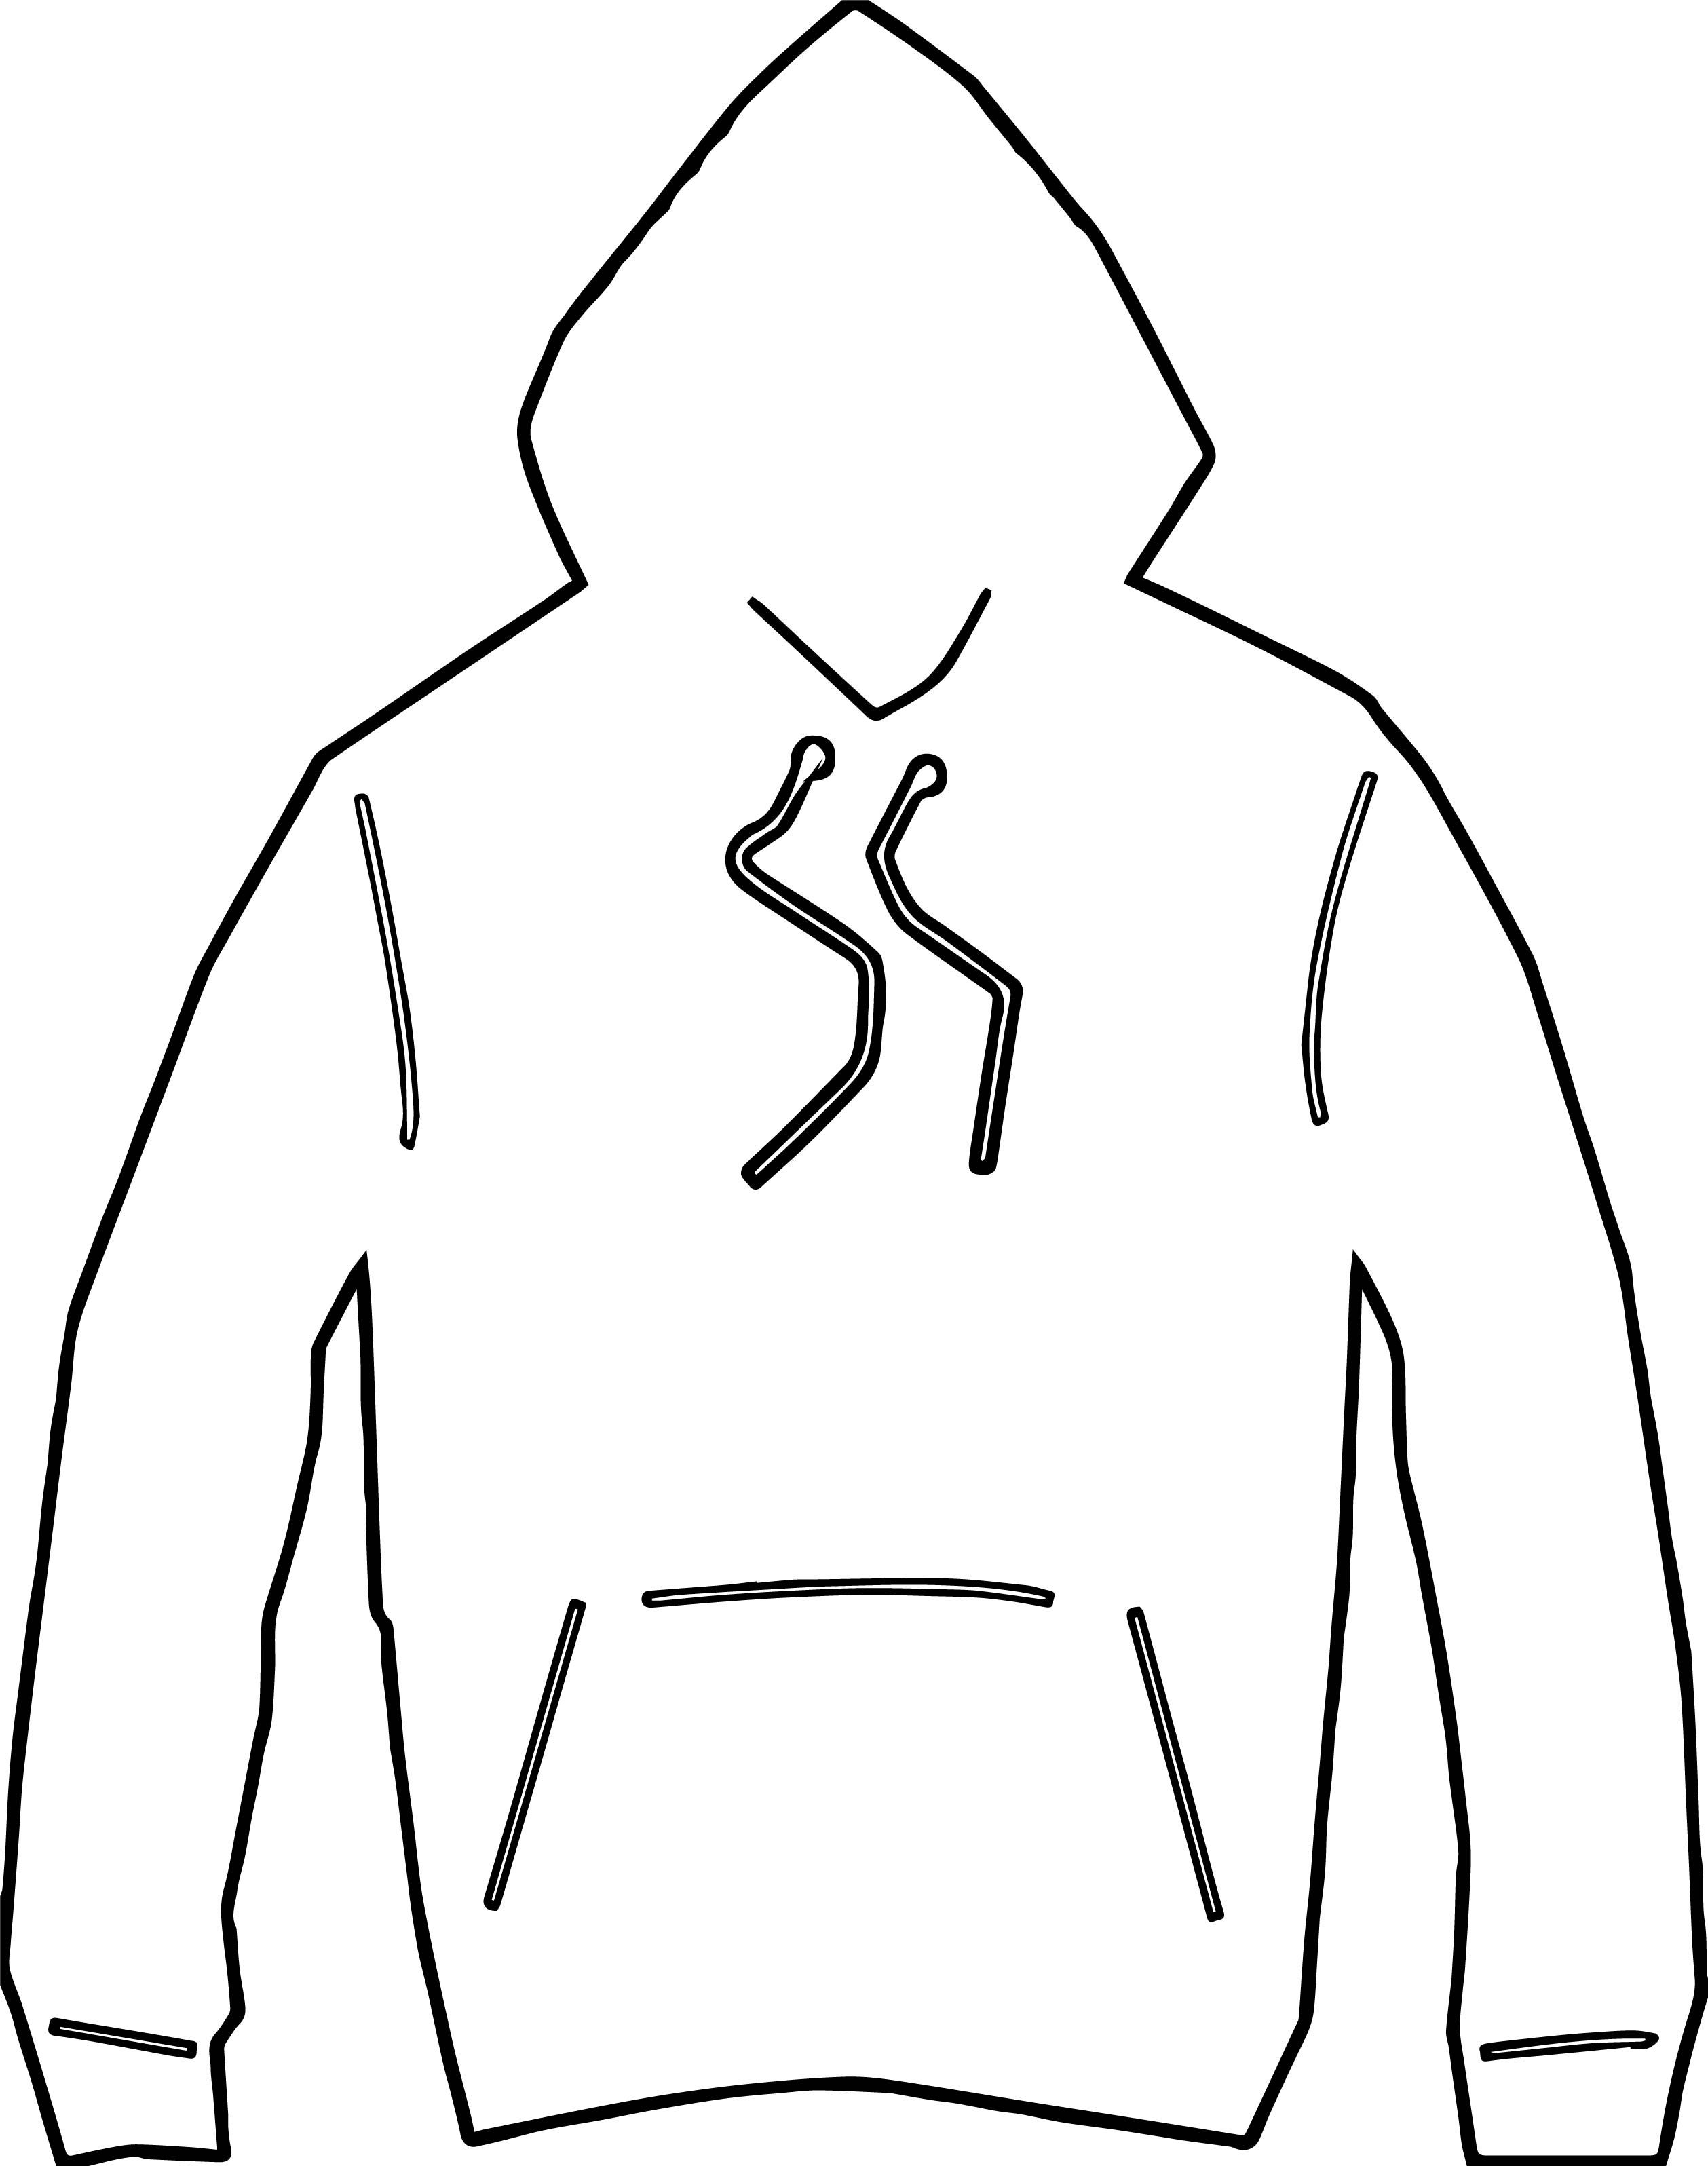 Any Hooded Jacket Coloring Page | Wecoloringpage